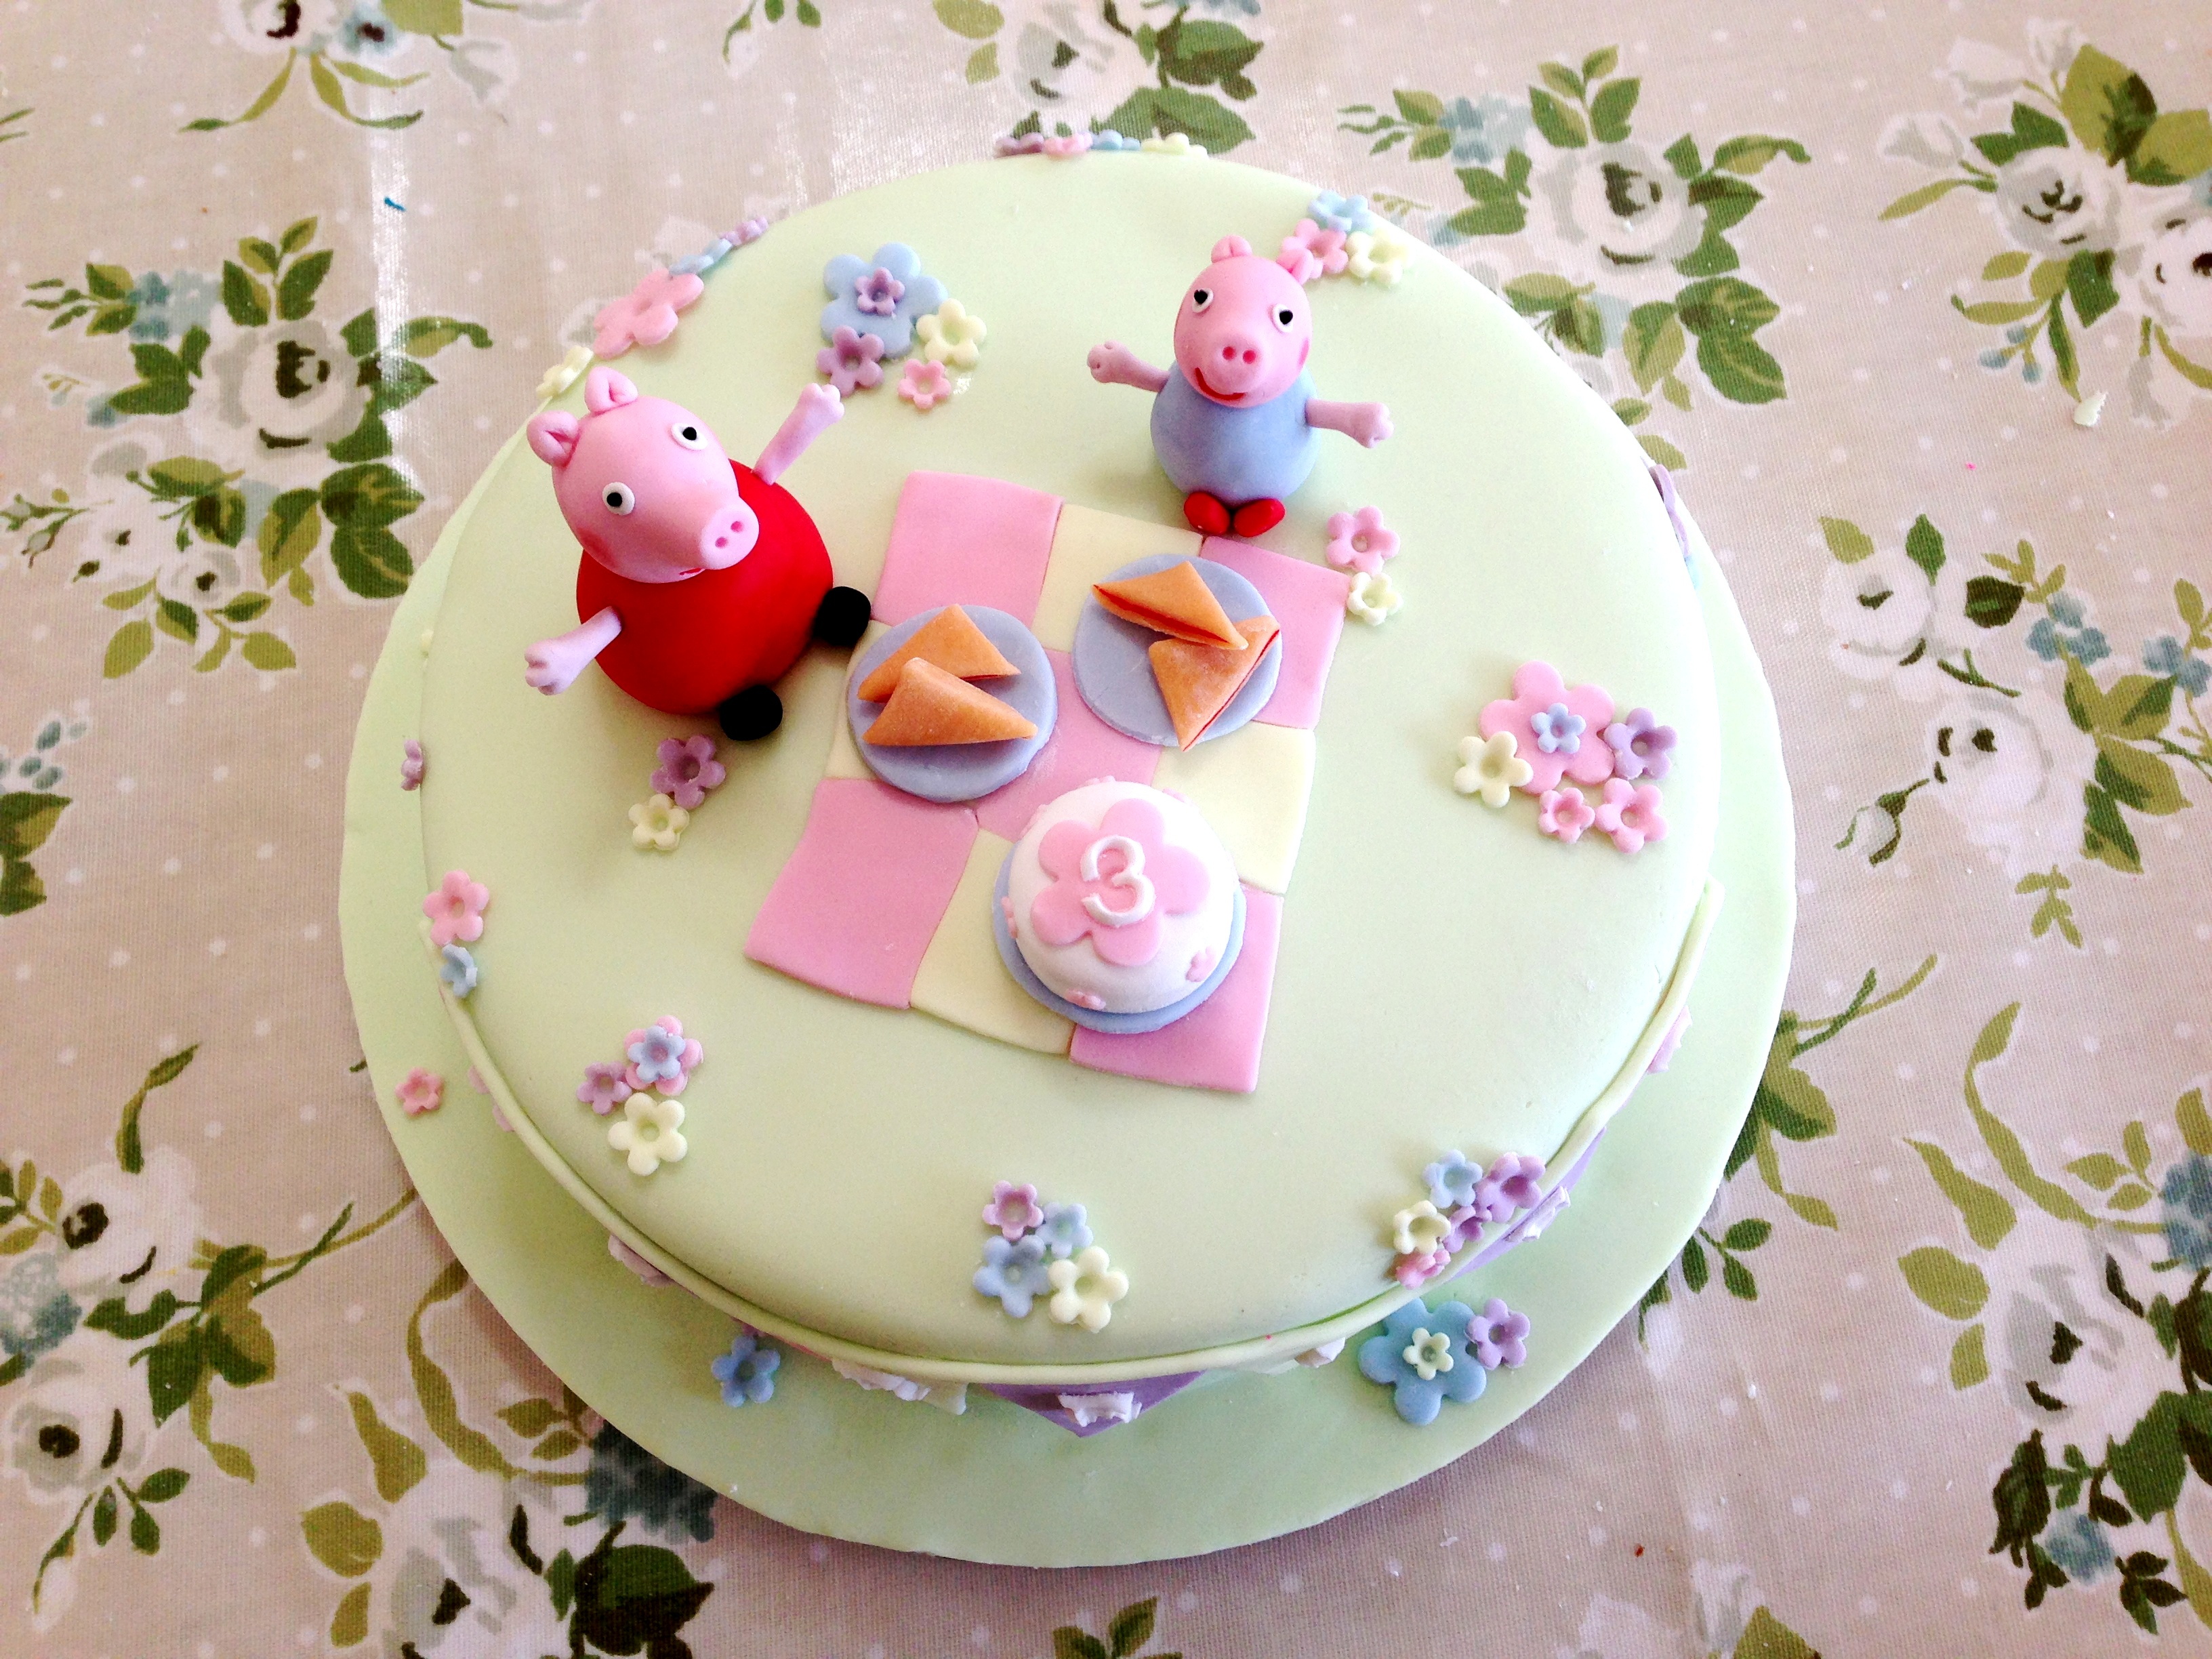 Cake Decorating Essex